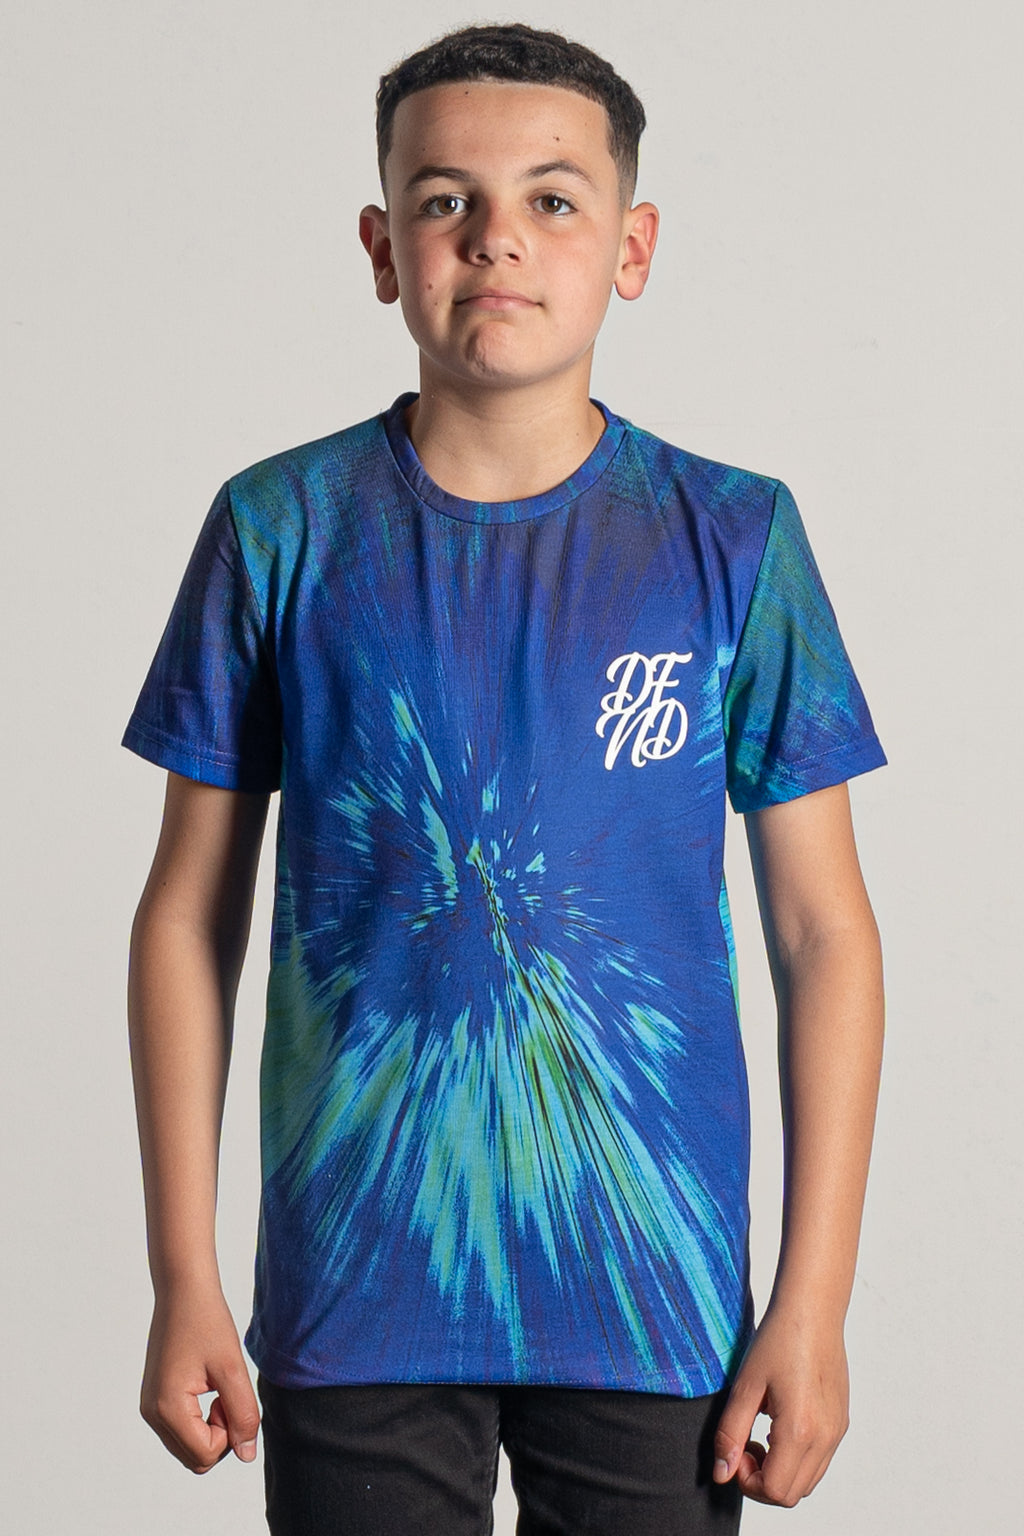 Boy's Tie Dye T-Shirt in Blue